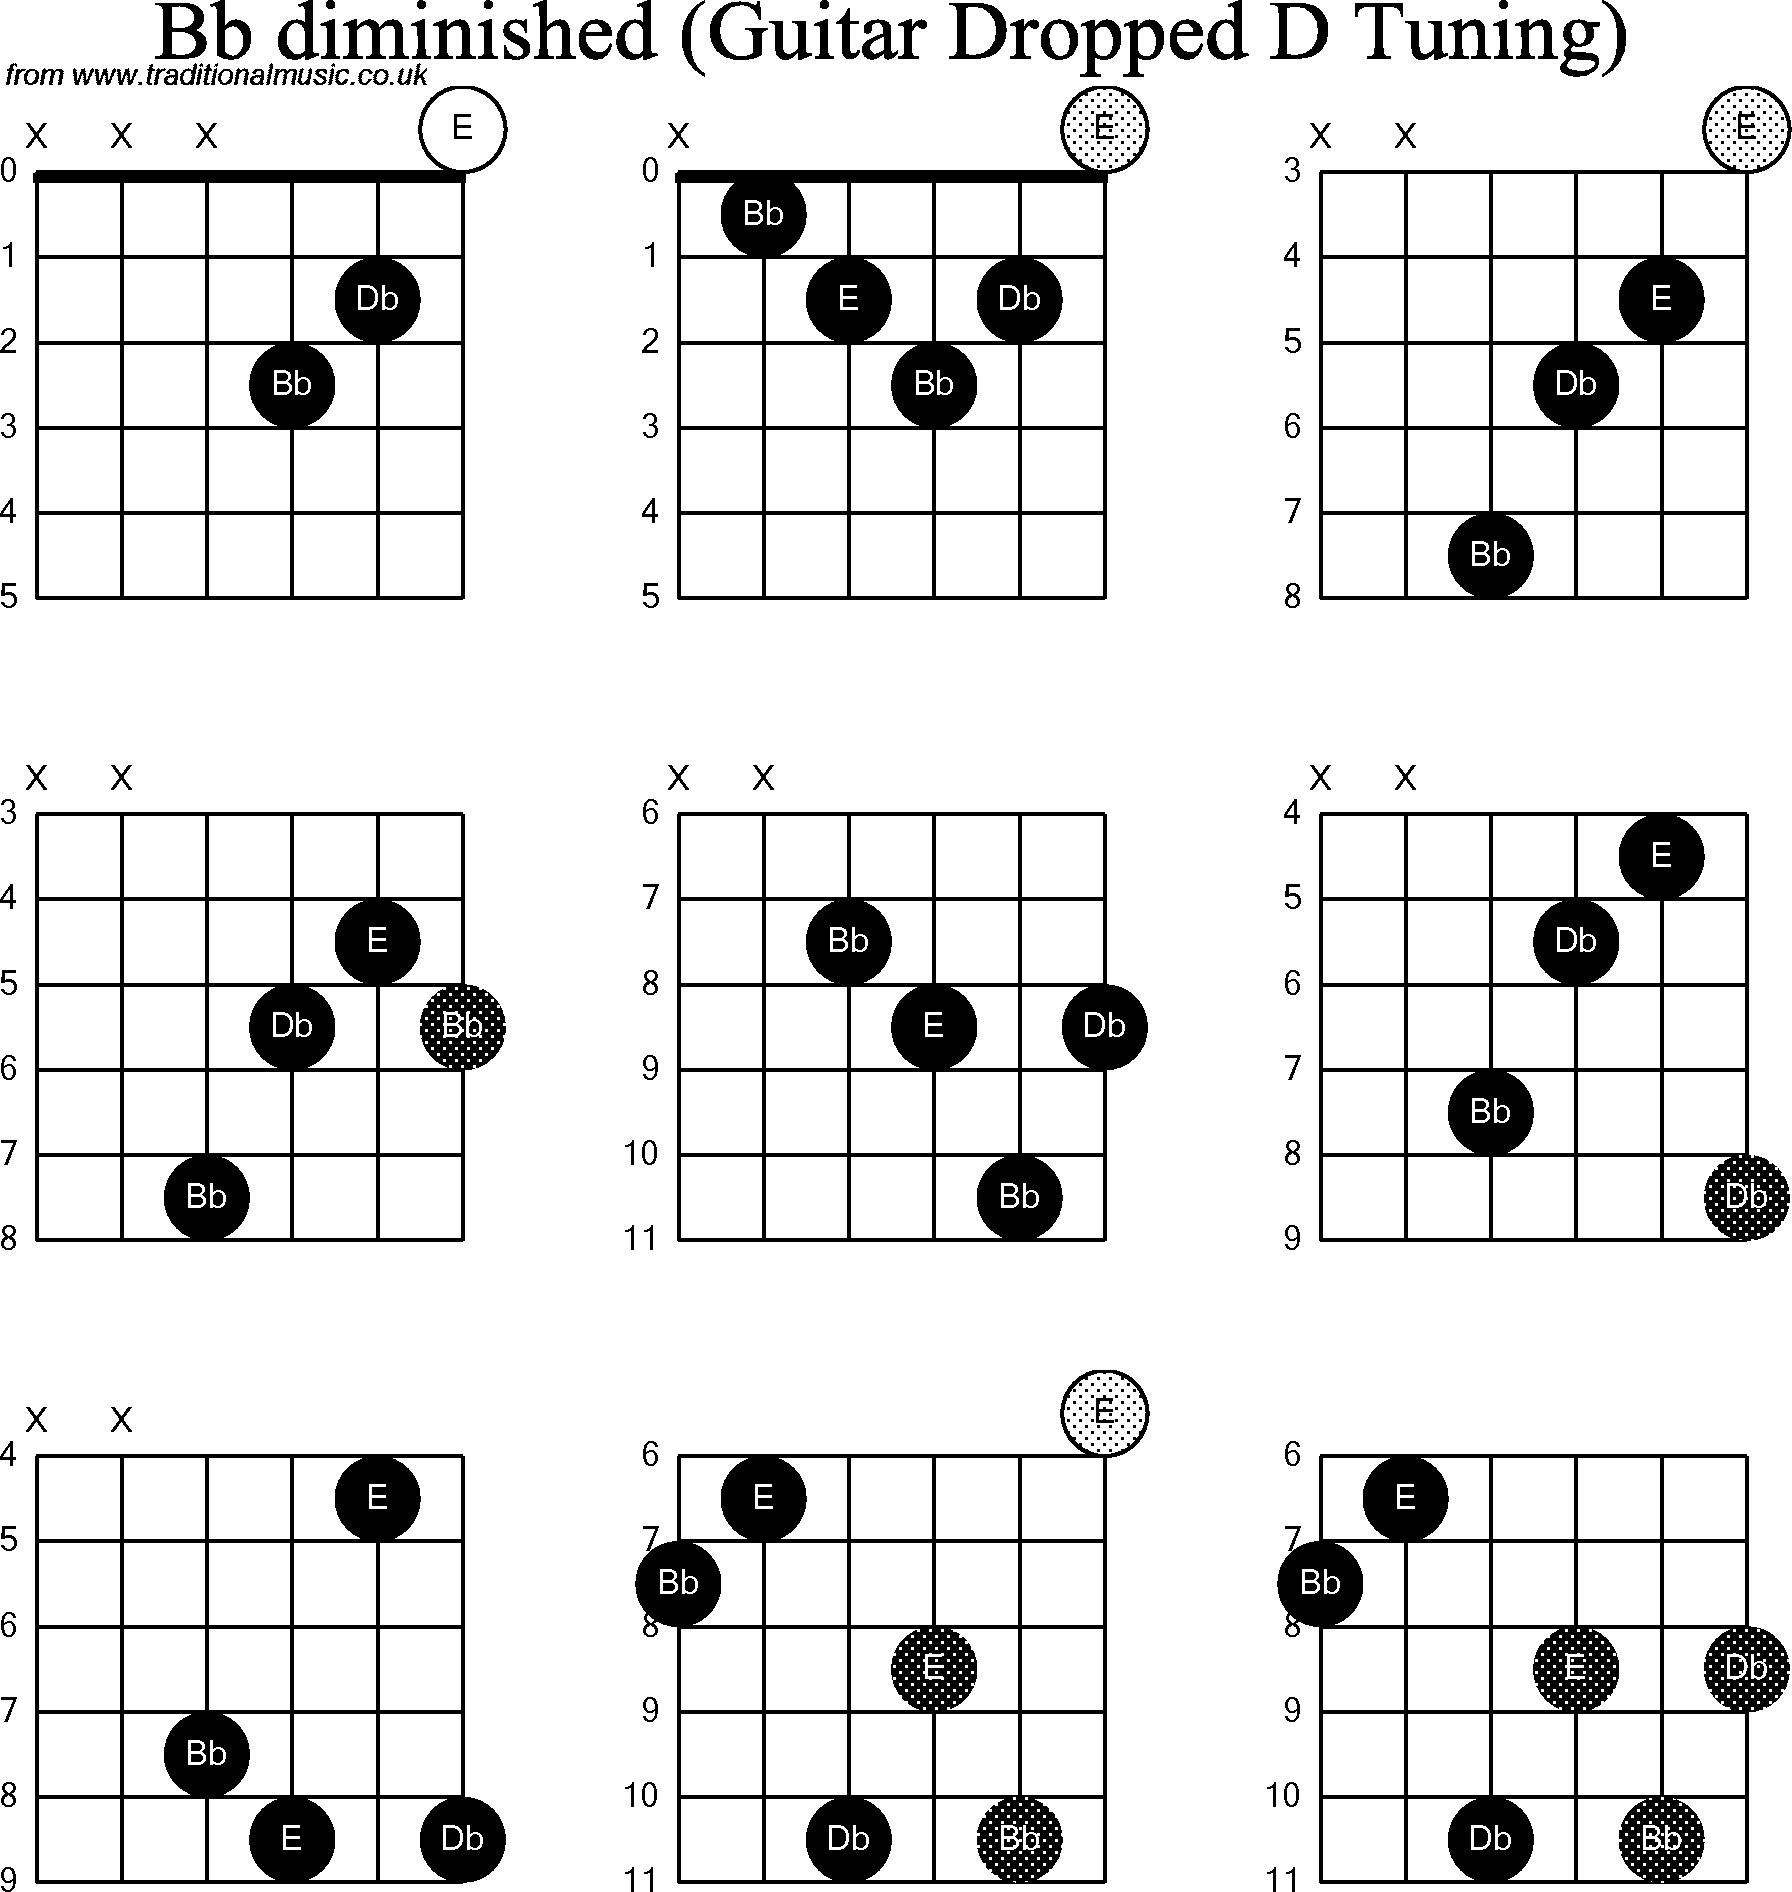 Chord Diagrams For Dropped D Guitardadgbe Bb Diminished